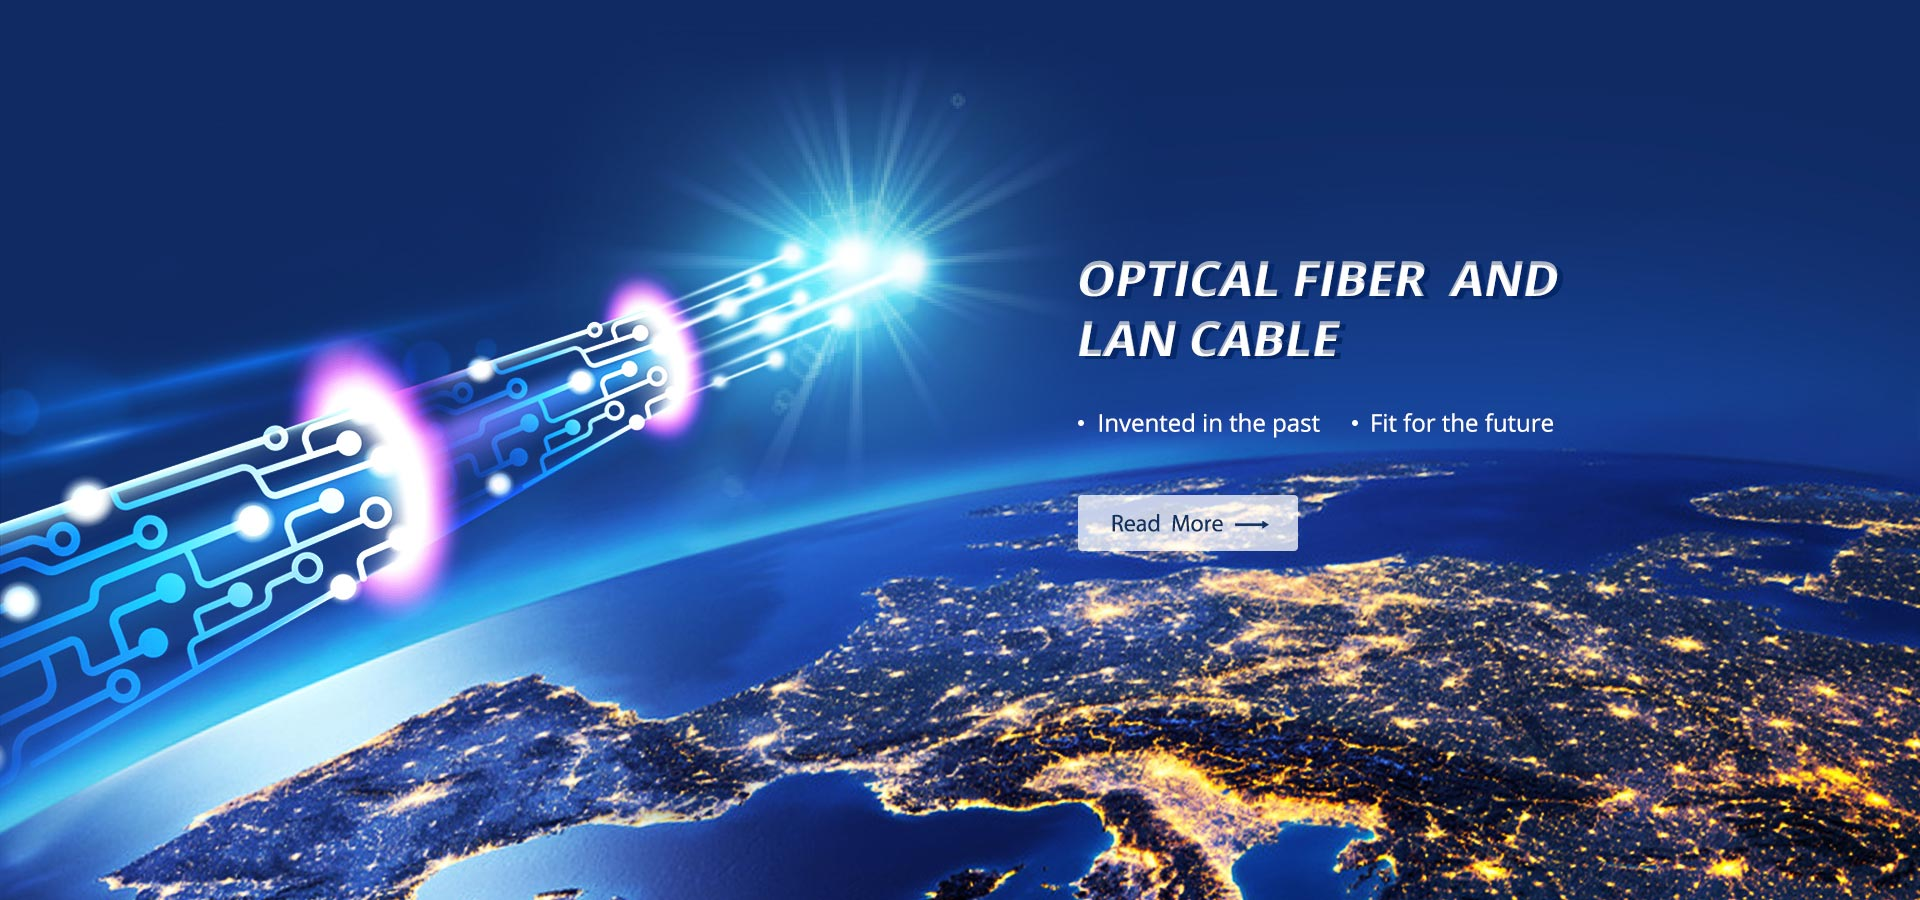 OPTICAL FIBER CABLE and LAN CABLE